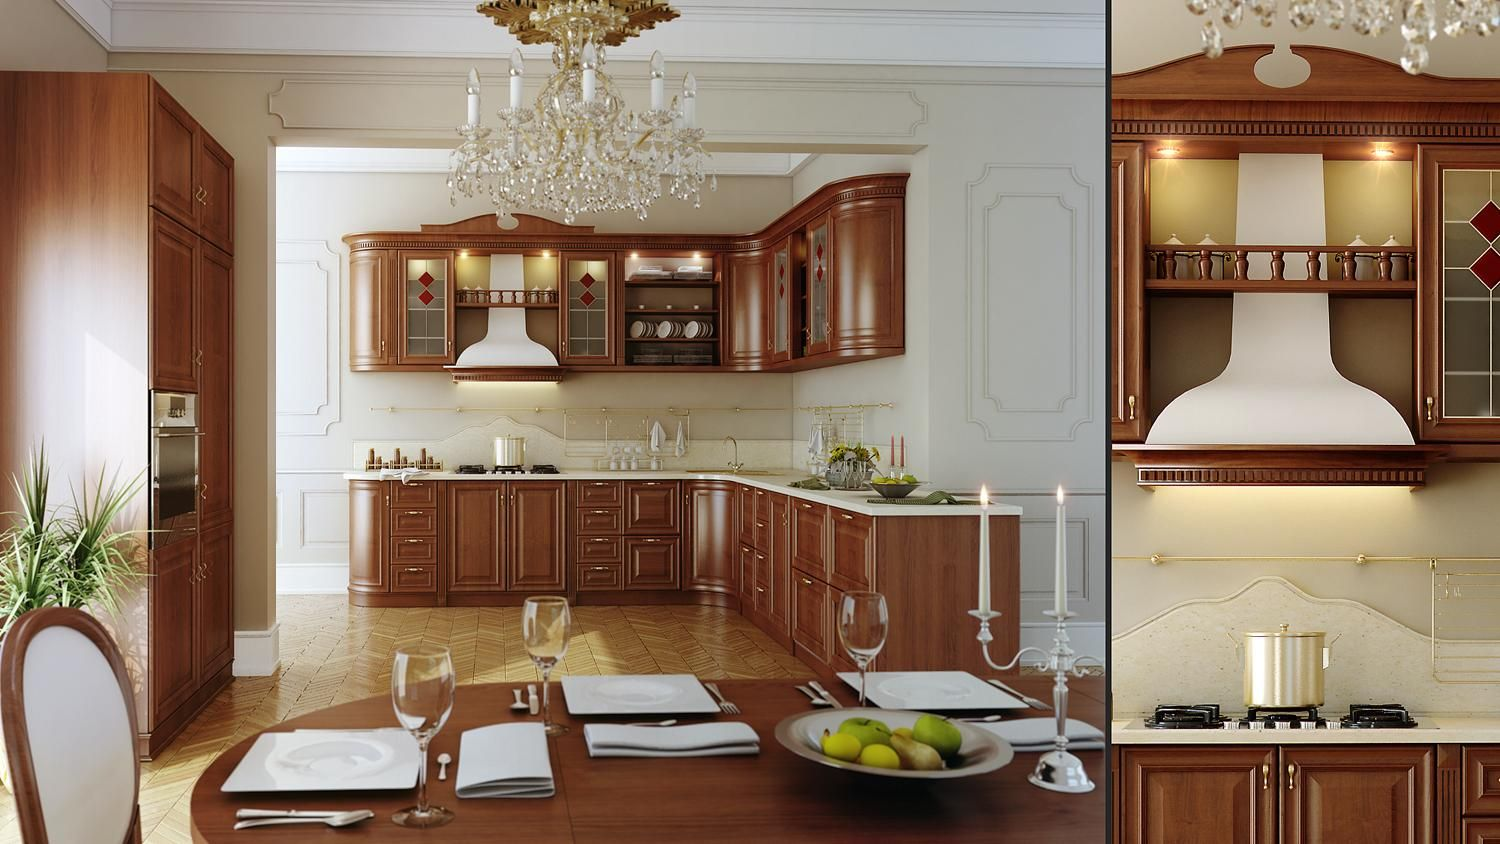 Excellent Kitchen Design Ideas from Meedo : Excellent Kitchen Design Ideas  From Meedo With White Wall And Luxury Chandelier And Classic Wood.